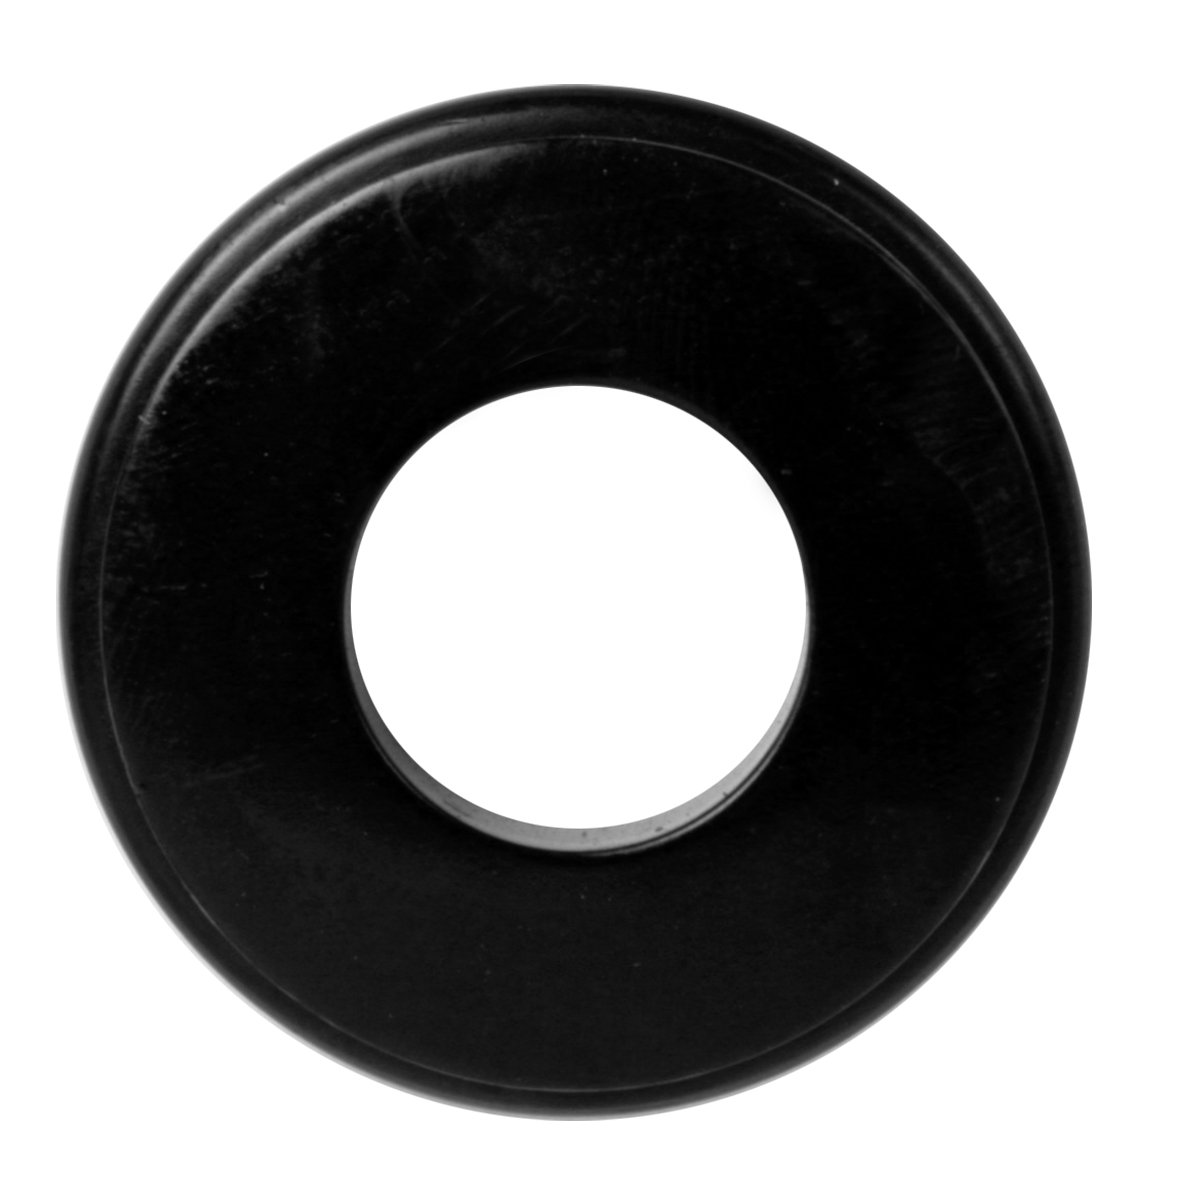 25 Black Gladhand Seals 10028 Black Rubber Gladhand Seals by GPD